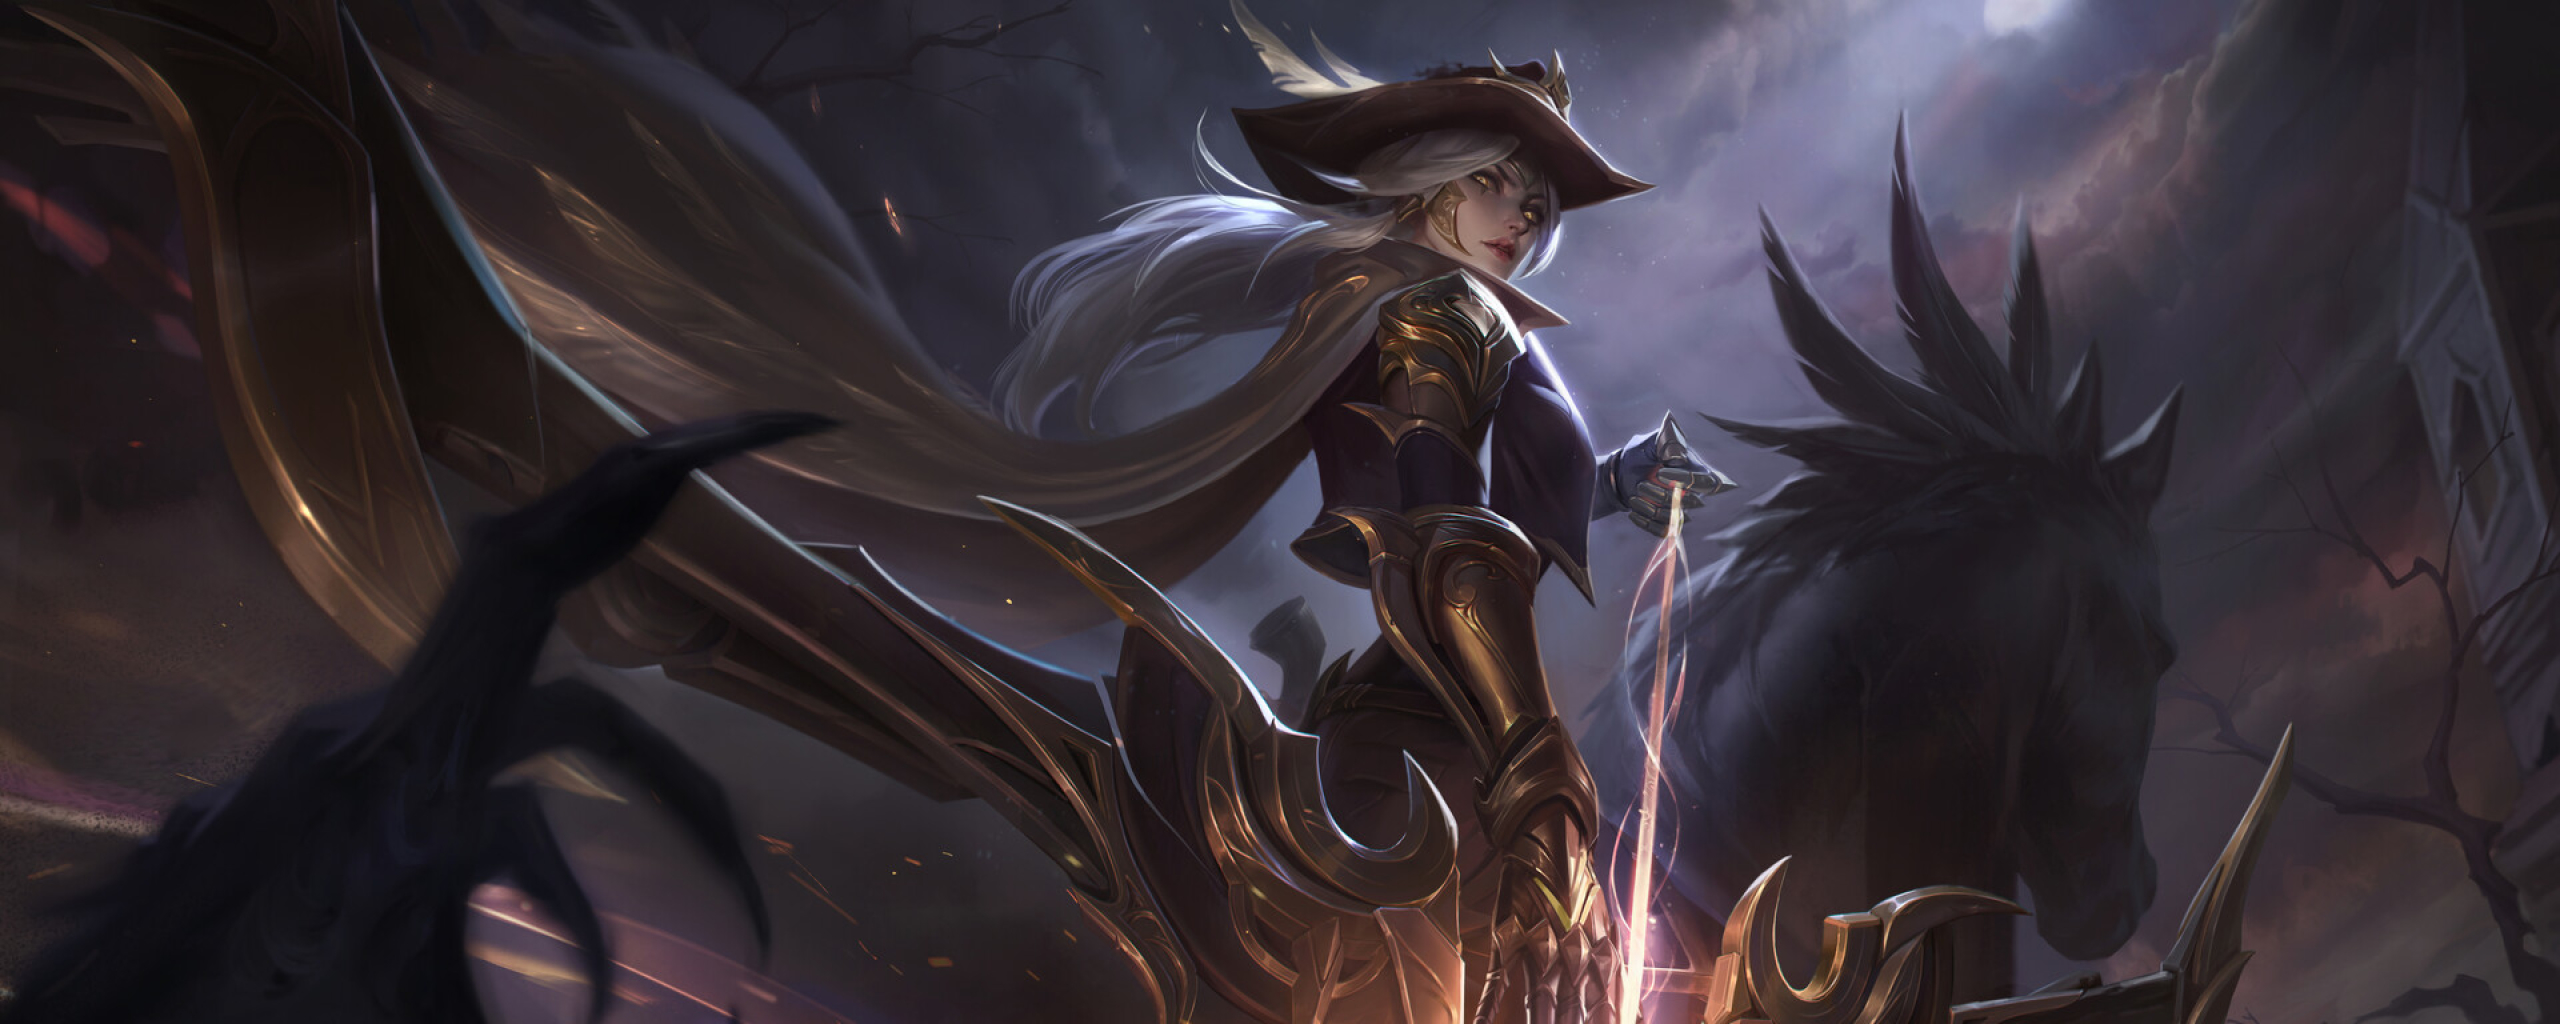 2560x1024 High Noon Ashe 2560x1024 Resolution Wallpaper Hd Games